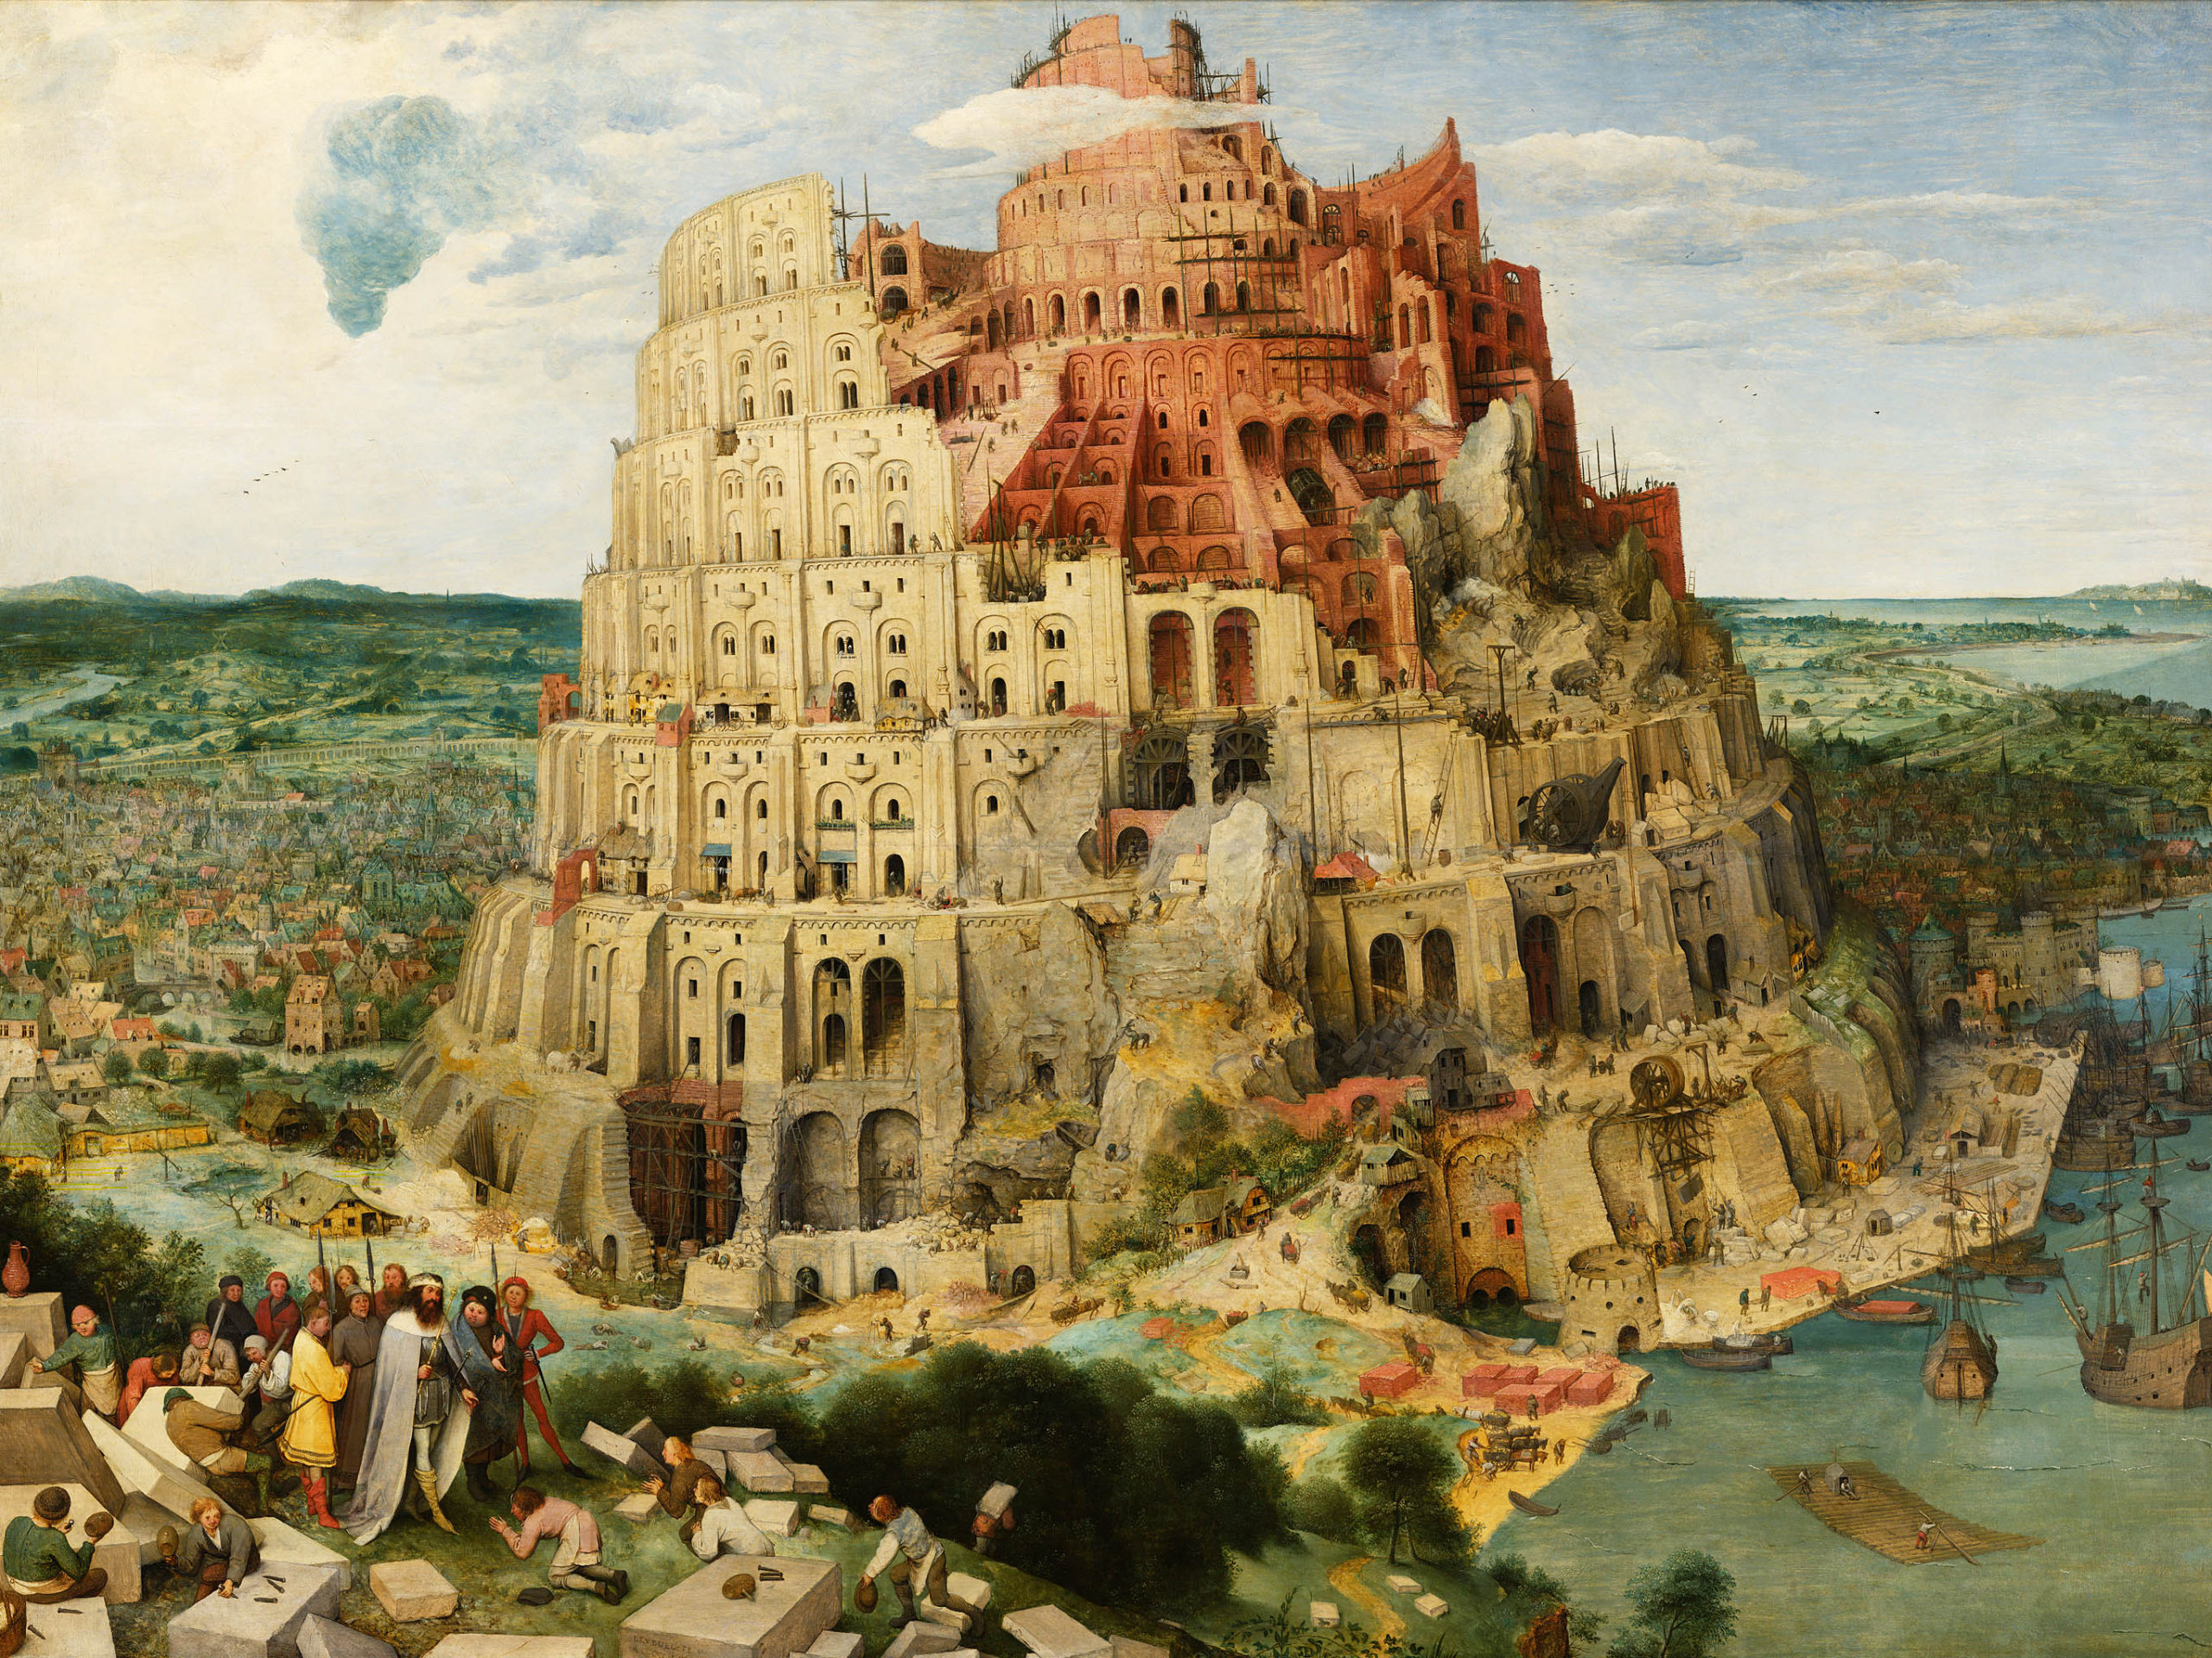 Pieter Bruegel - The Tower of Babel 2732x2048